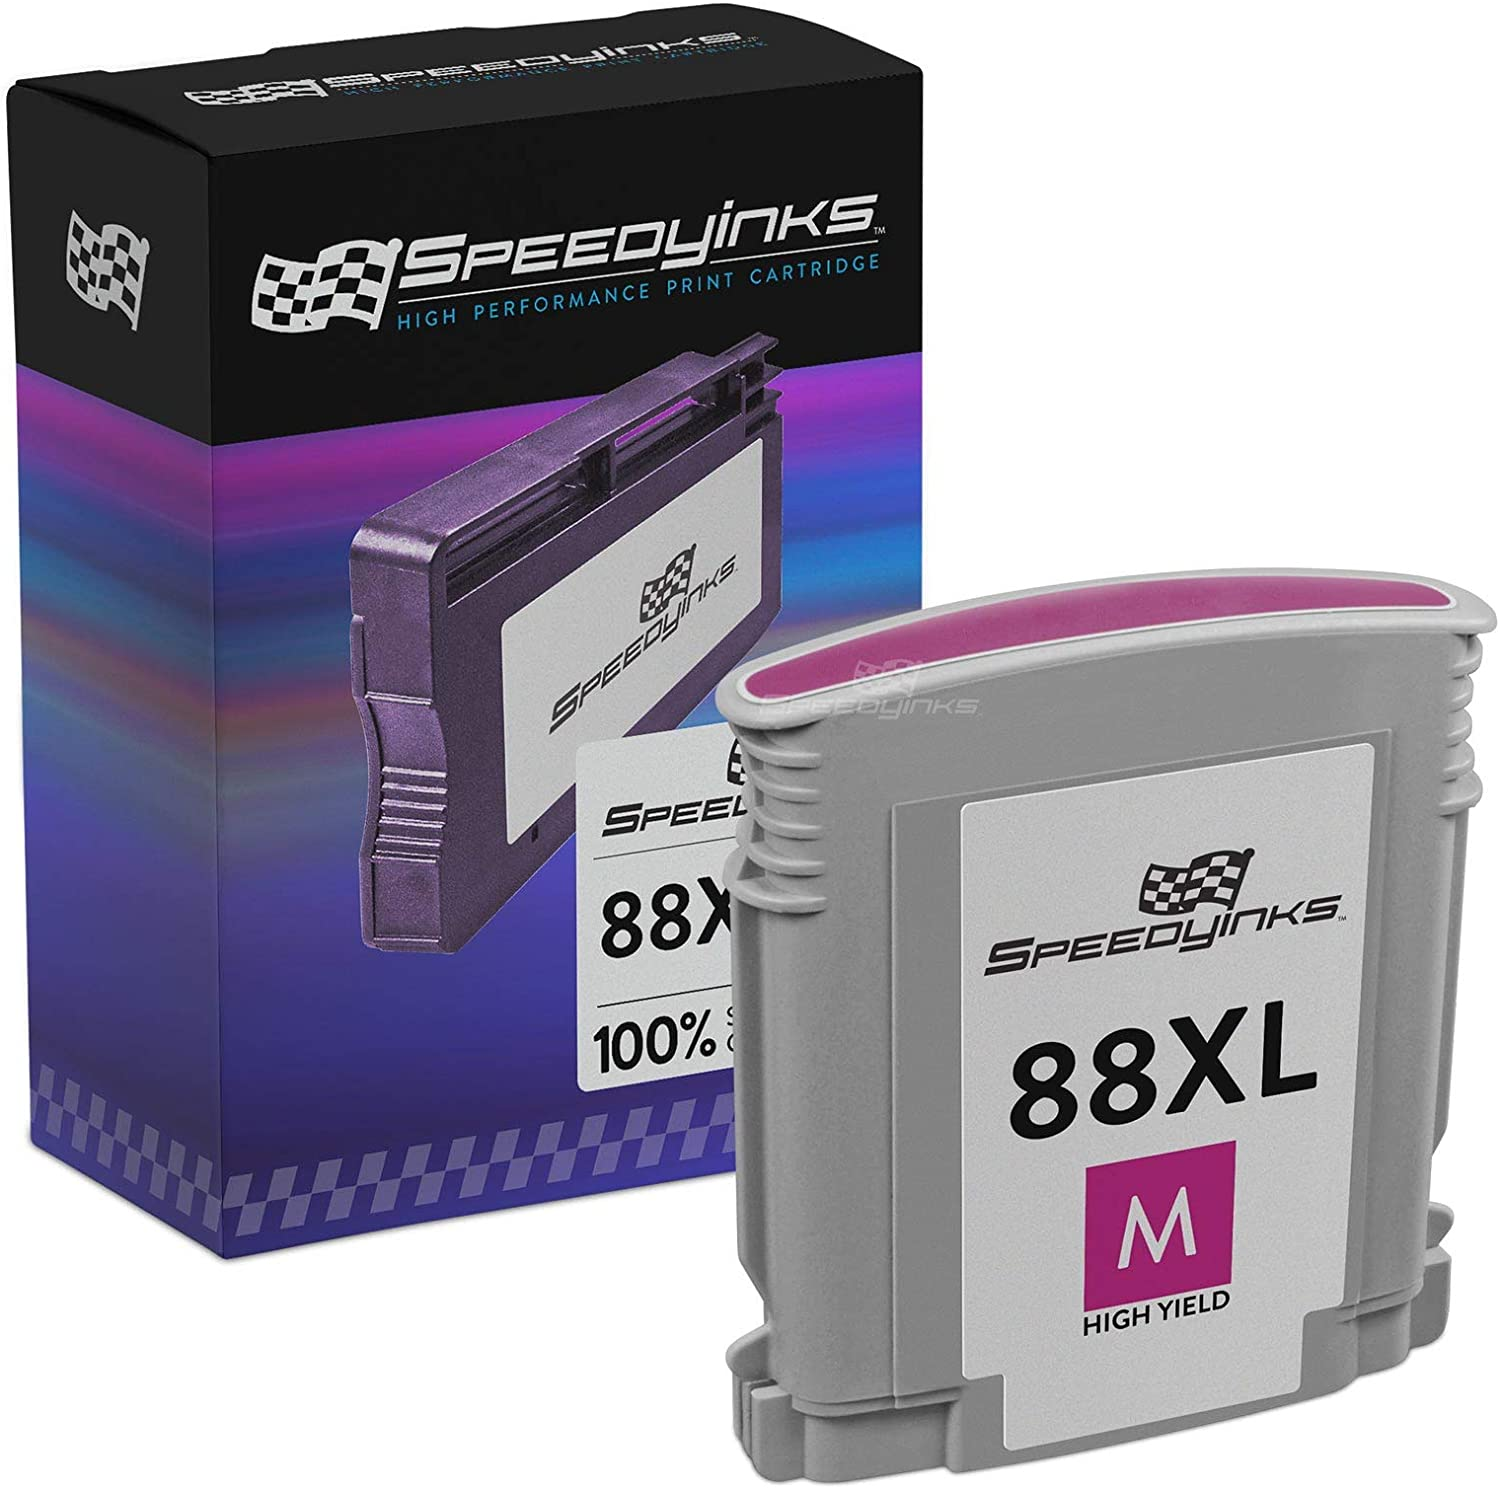 Speedy Inks Remanufactured Ink Cartridge Replacement for HP 88XL C9392AN High Yield (Magenta)